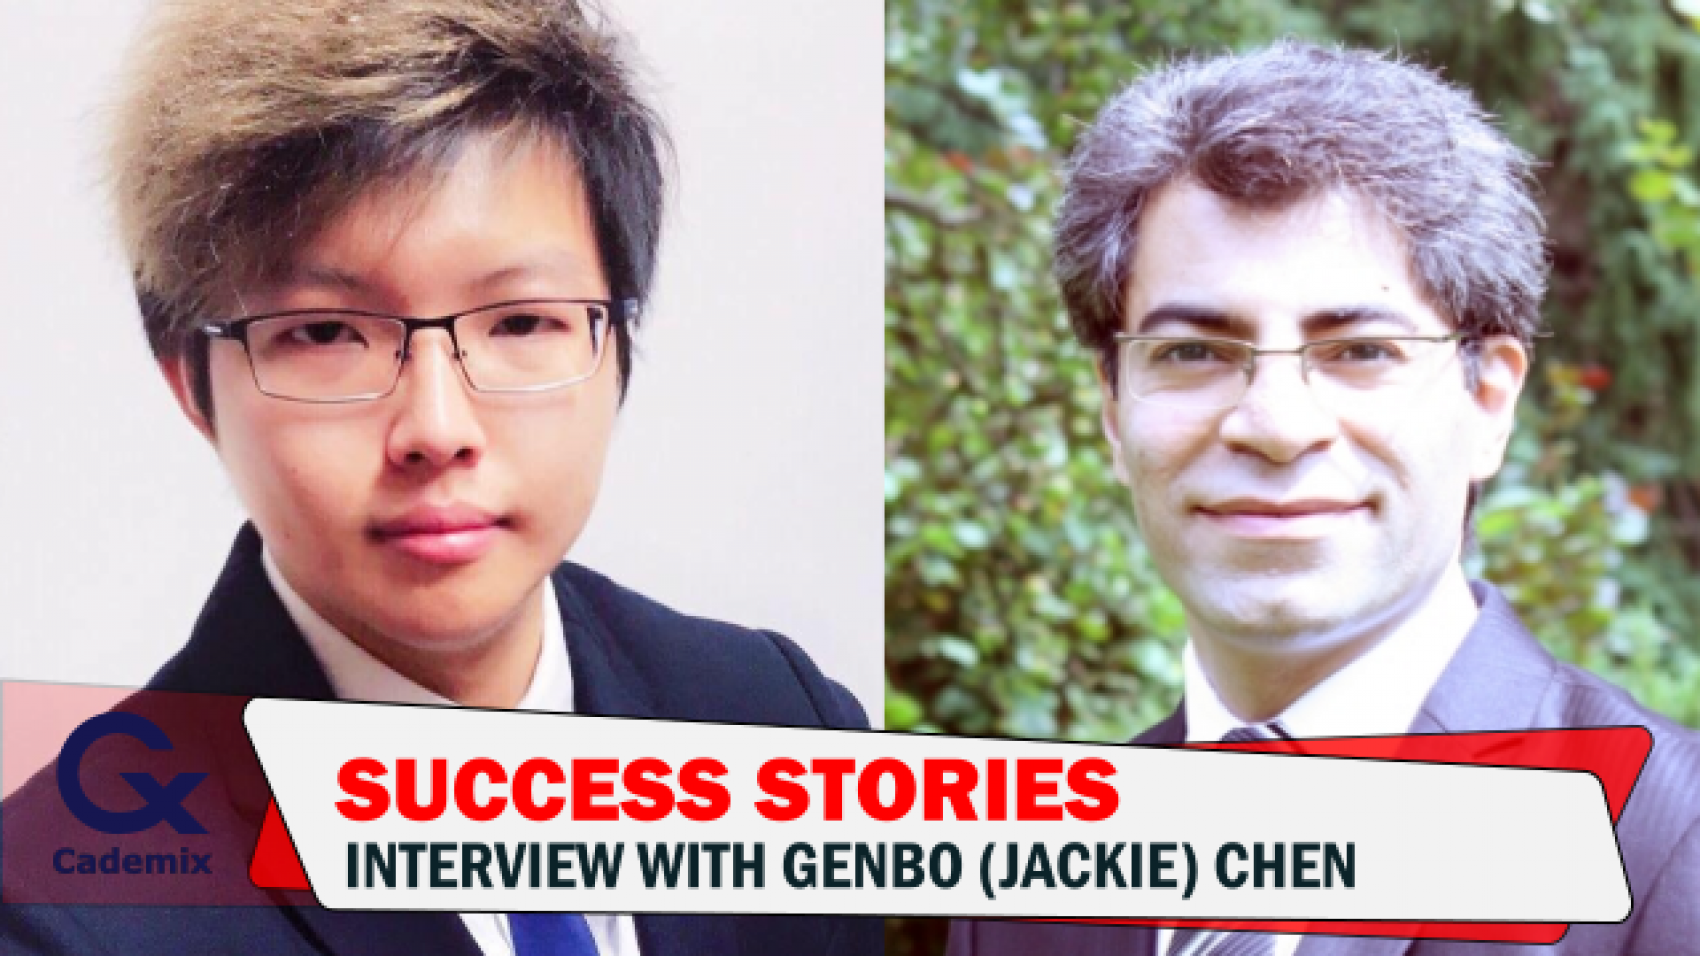 Javad Zarbakhsh Interview with Jackie Genbo Chen Cademix Success Story, Study Austria